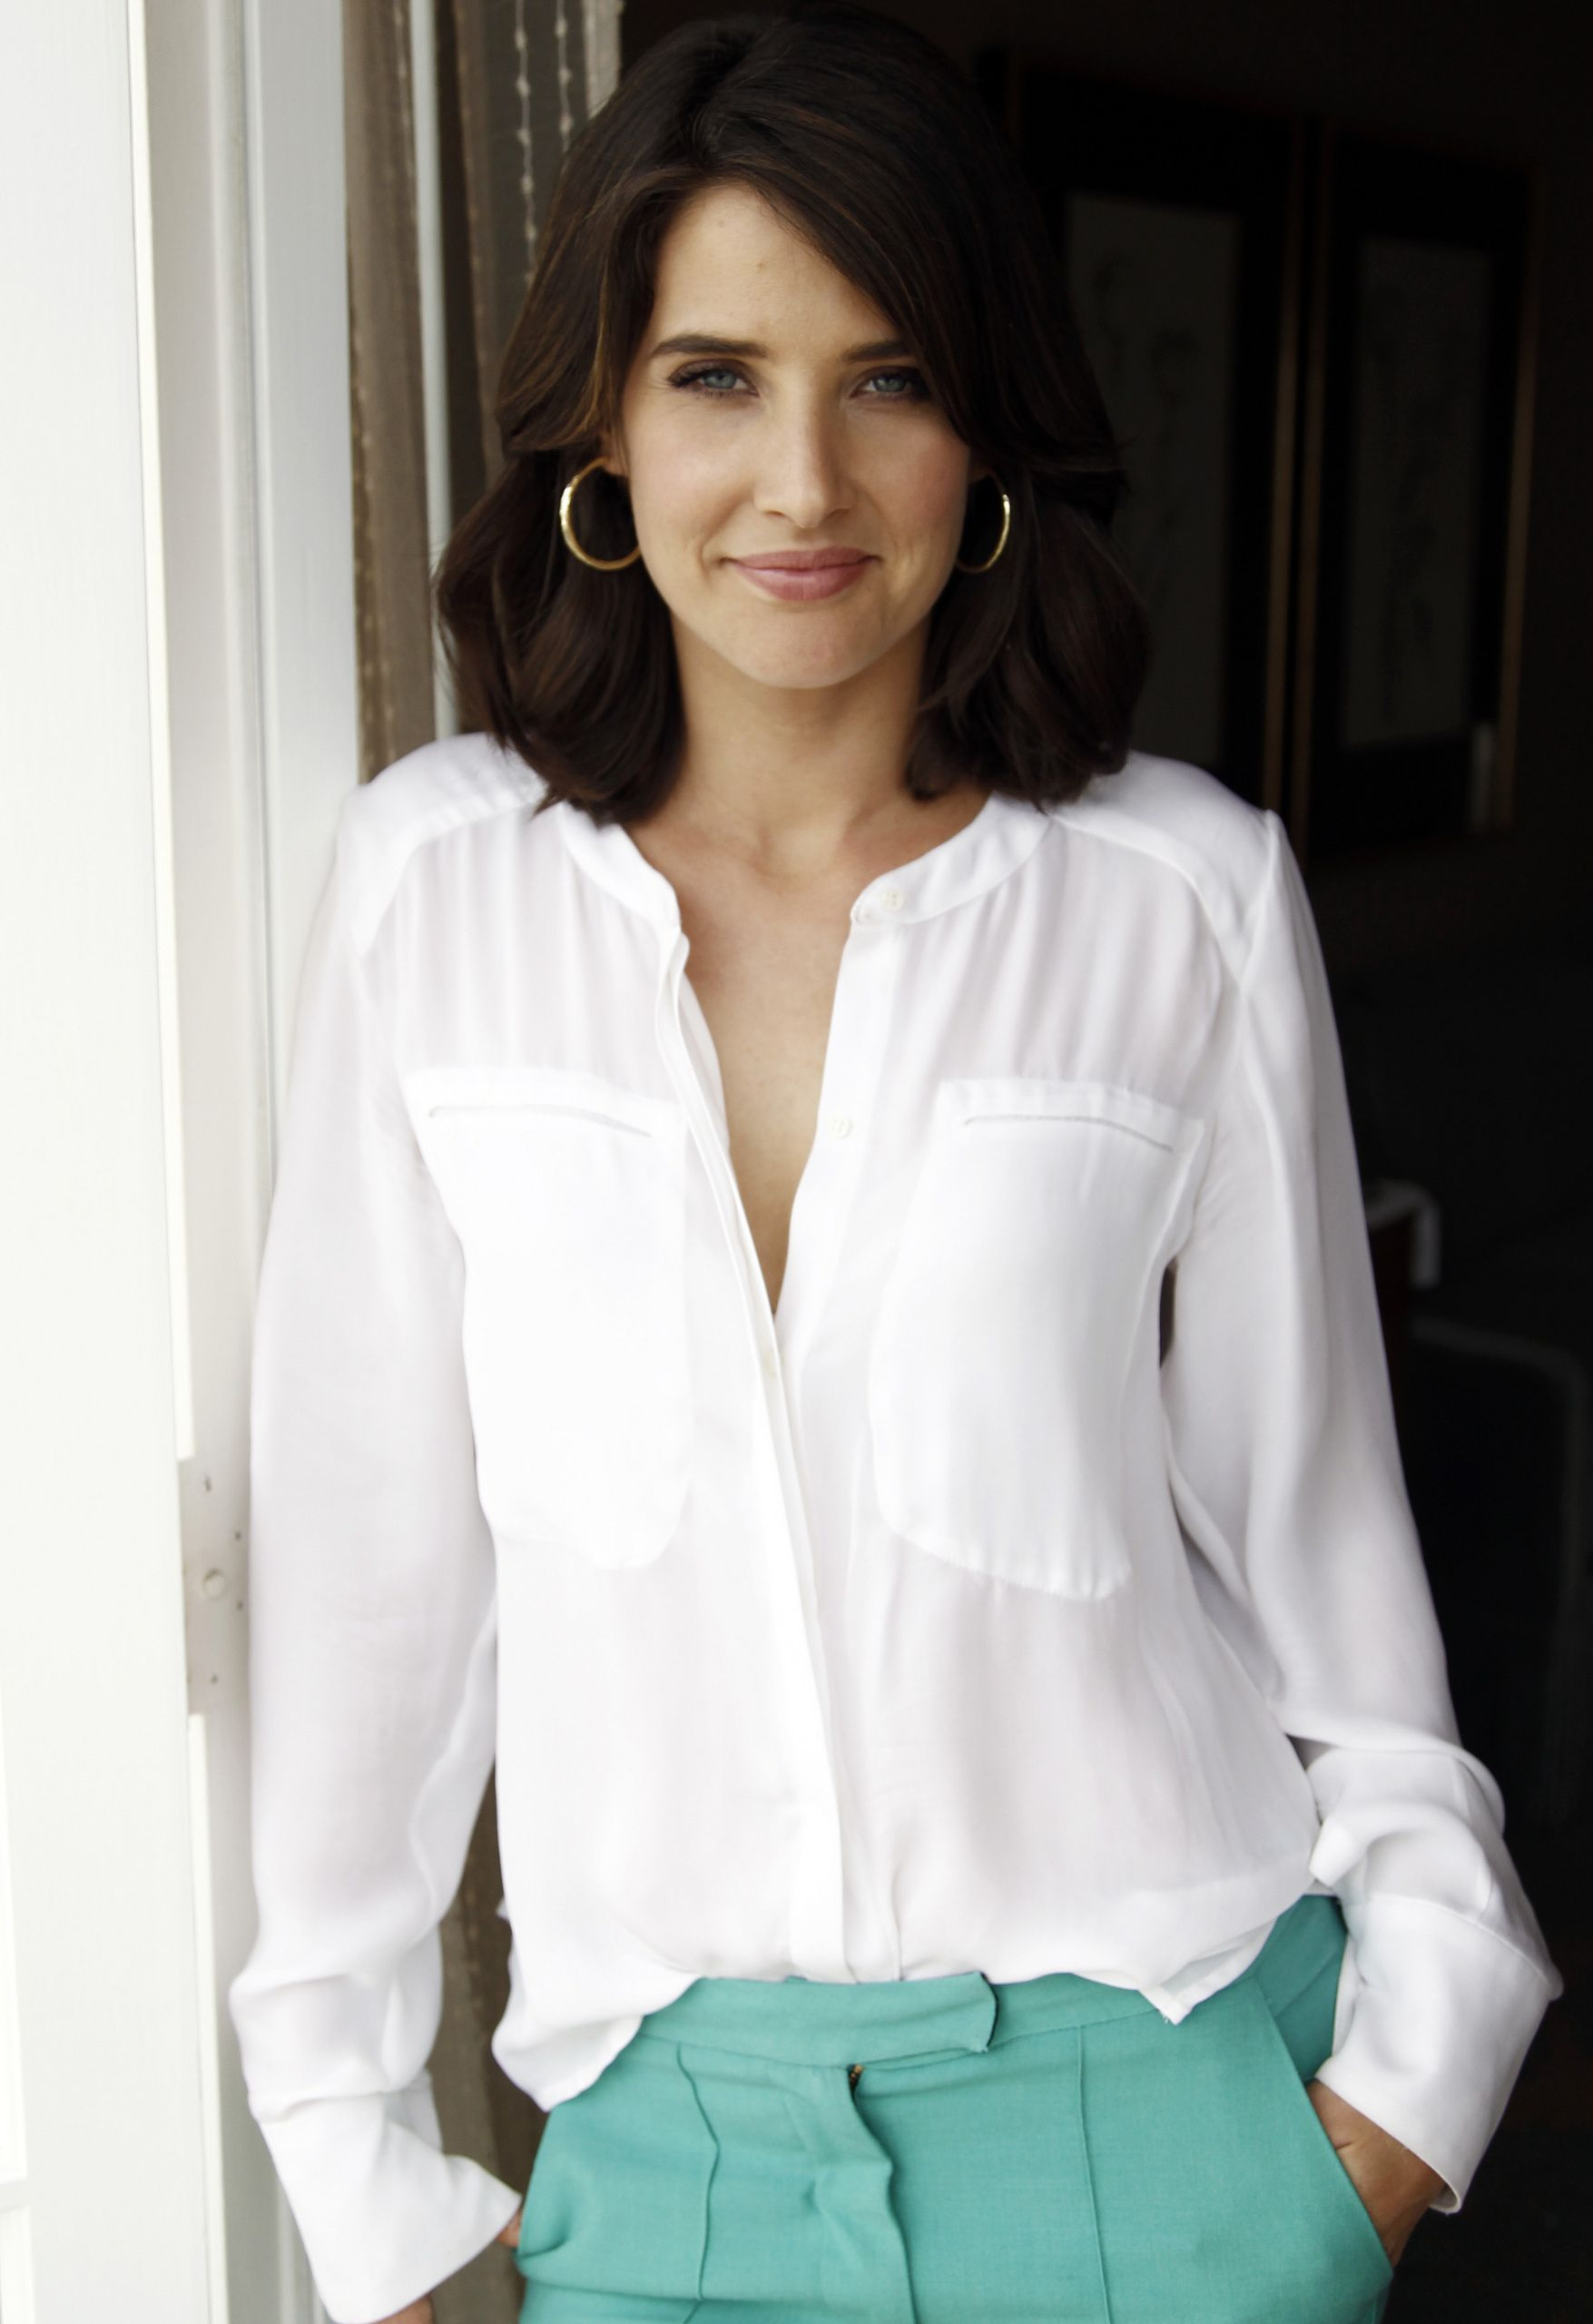 cobie smulders gallerycobie smulders фото, cobie smulders 2016, cobie smulders кинопоиск, cobie smulders 2017, cobie smulders инстаграм, cobie smulders wiki, cobie smulders gif hunt, cobie smulders husband, cobie smulders insta, cobie smulders maxim hd, cobie smulders wikipedia, cobie smulders fansite, cobie smulders site, cobie smulders рак, cobie smulders imdb, cobie smulders photoshoots, cobie smulders son, cobie smulders interview, cobie smulders and josh radnor together, cobie smulders gallery